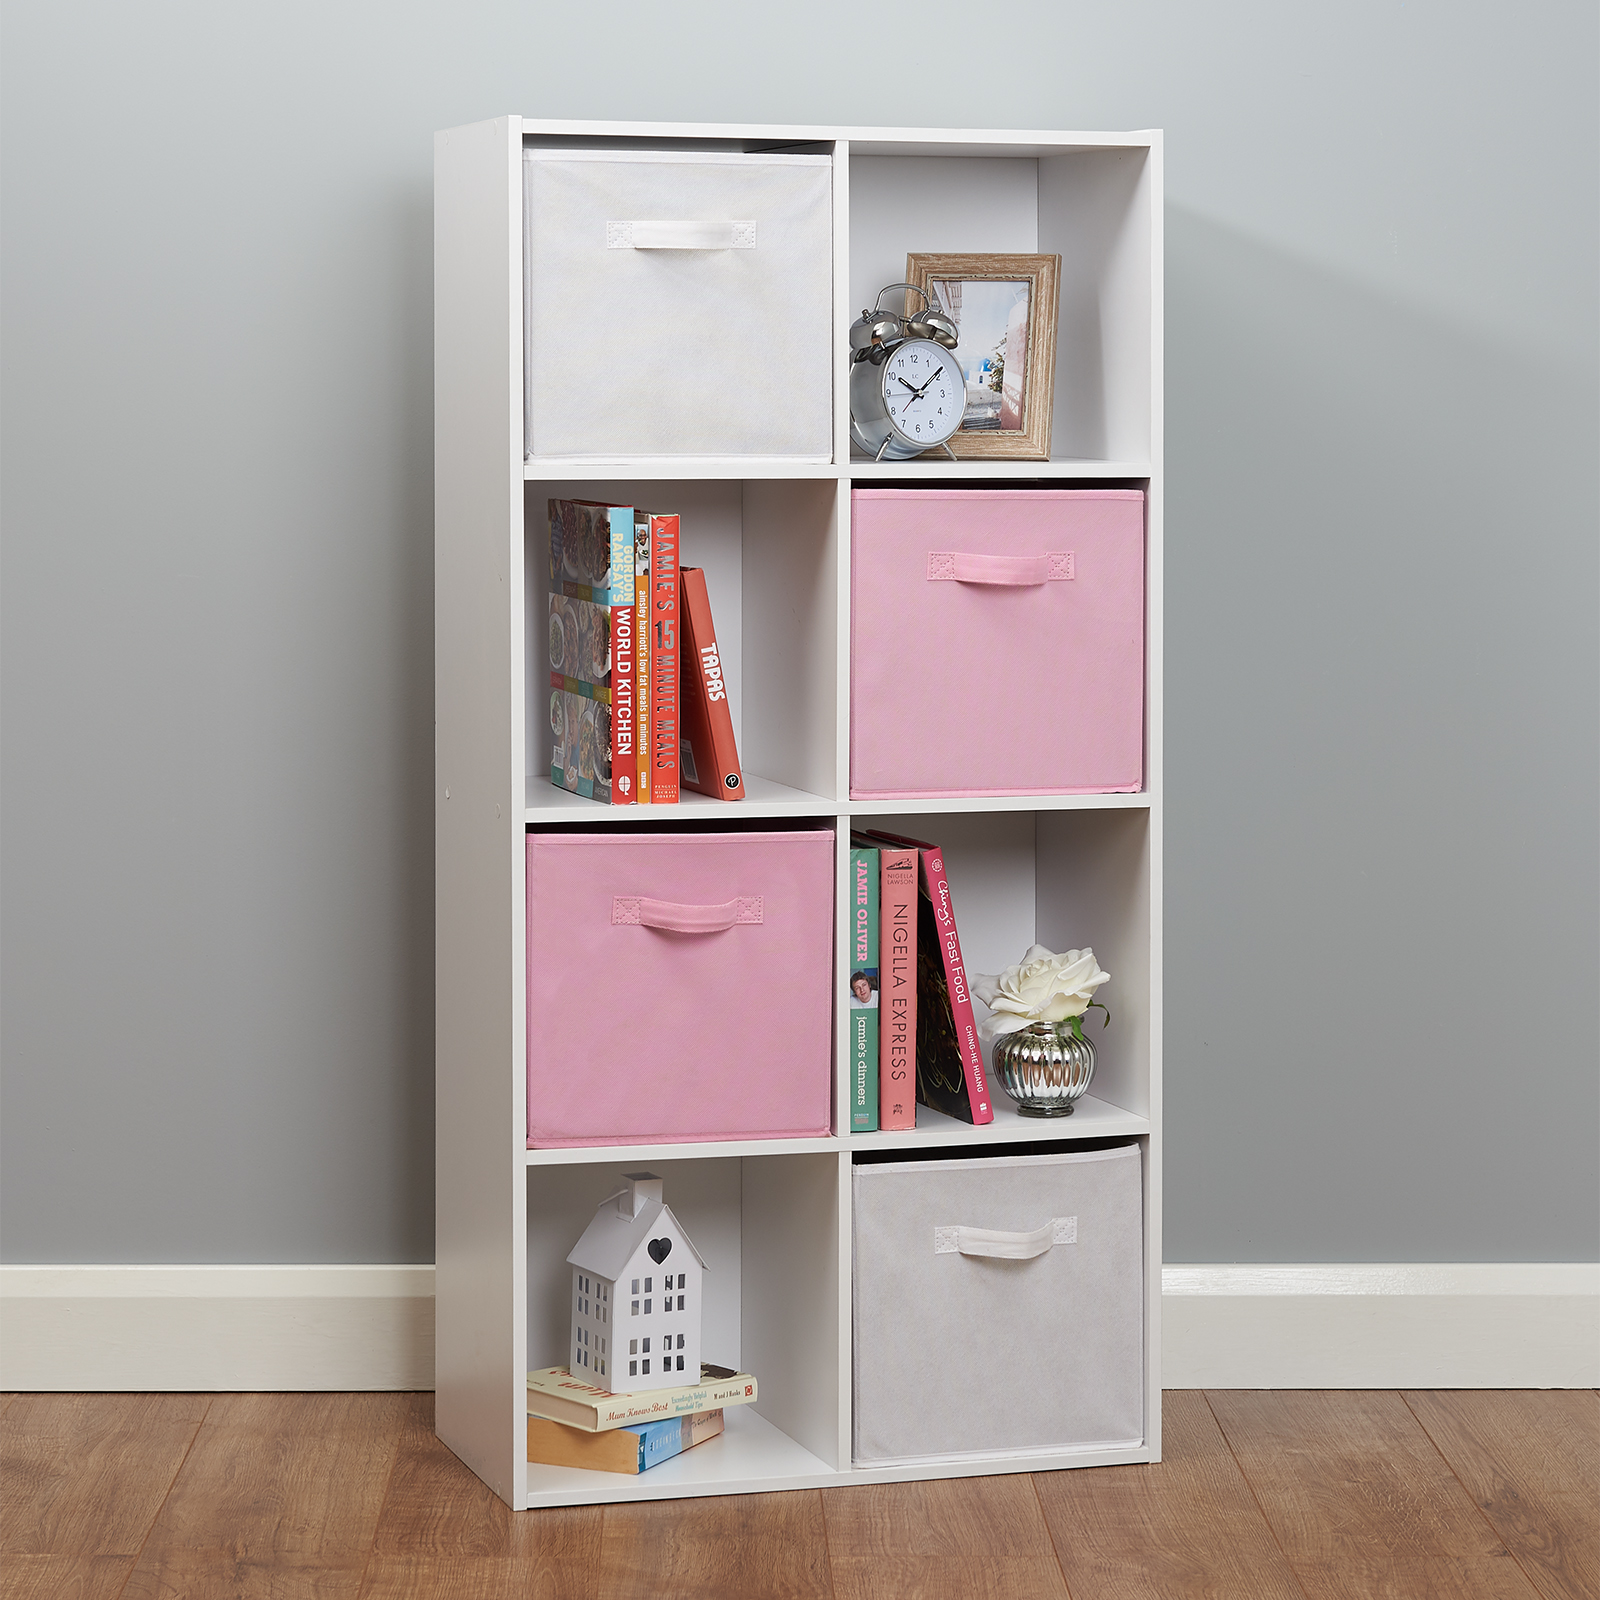 New Bookcase Toy Box White Finish Bedroom Playroom Child: 8 Cube Storage Unit White/Pink Boxes Childrens/Kids